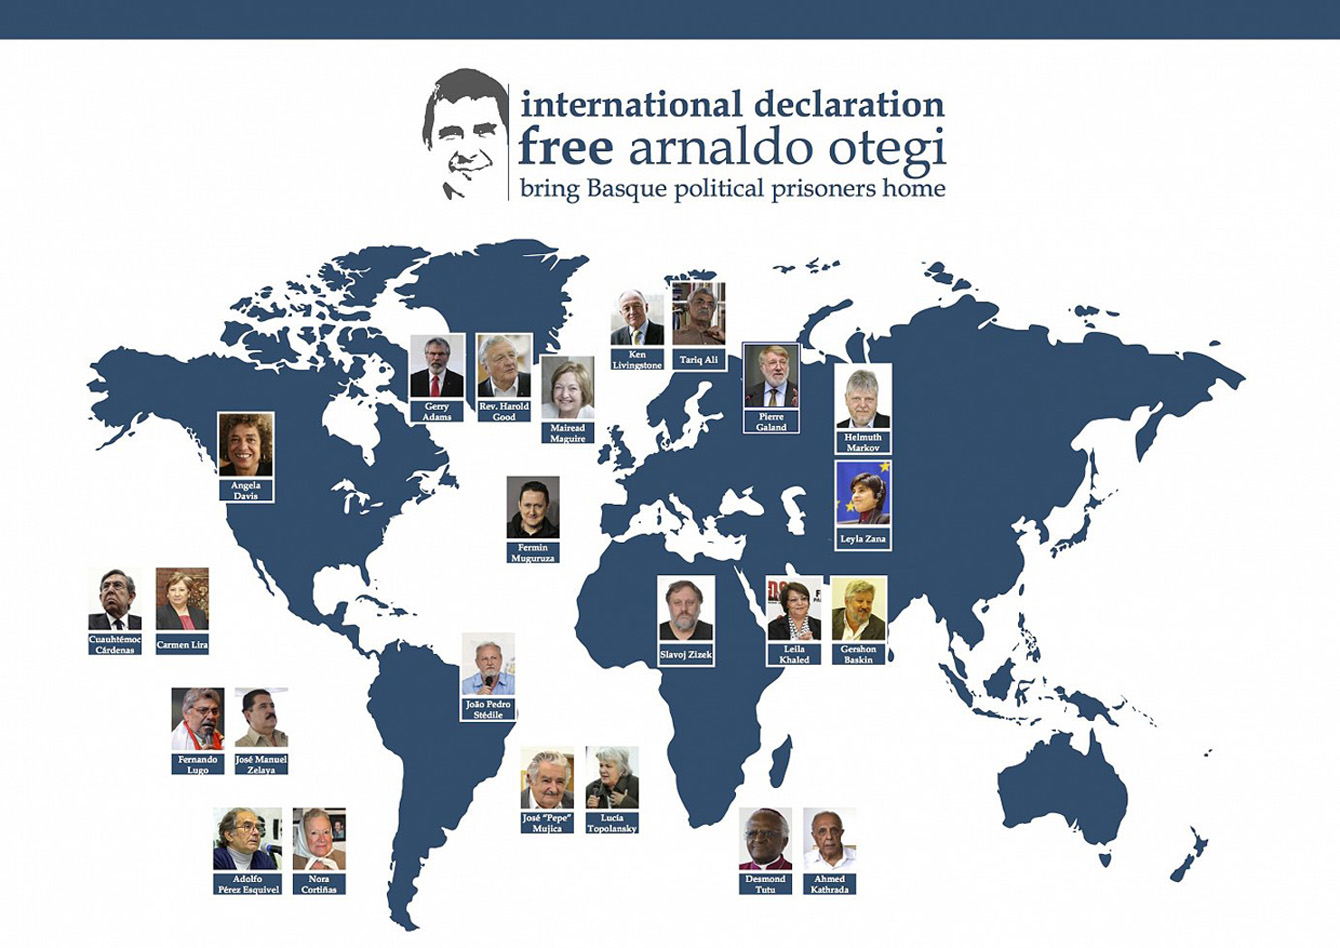 2015 03 25 otegiinternationaldeclaration